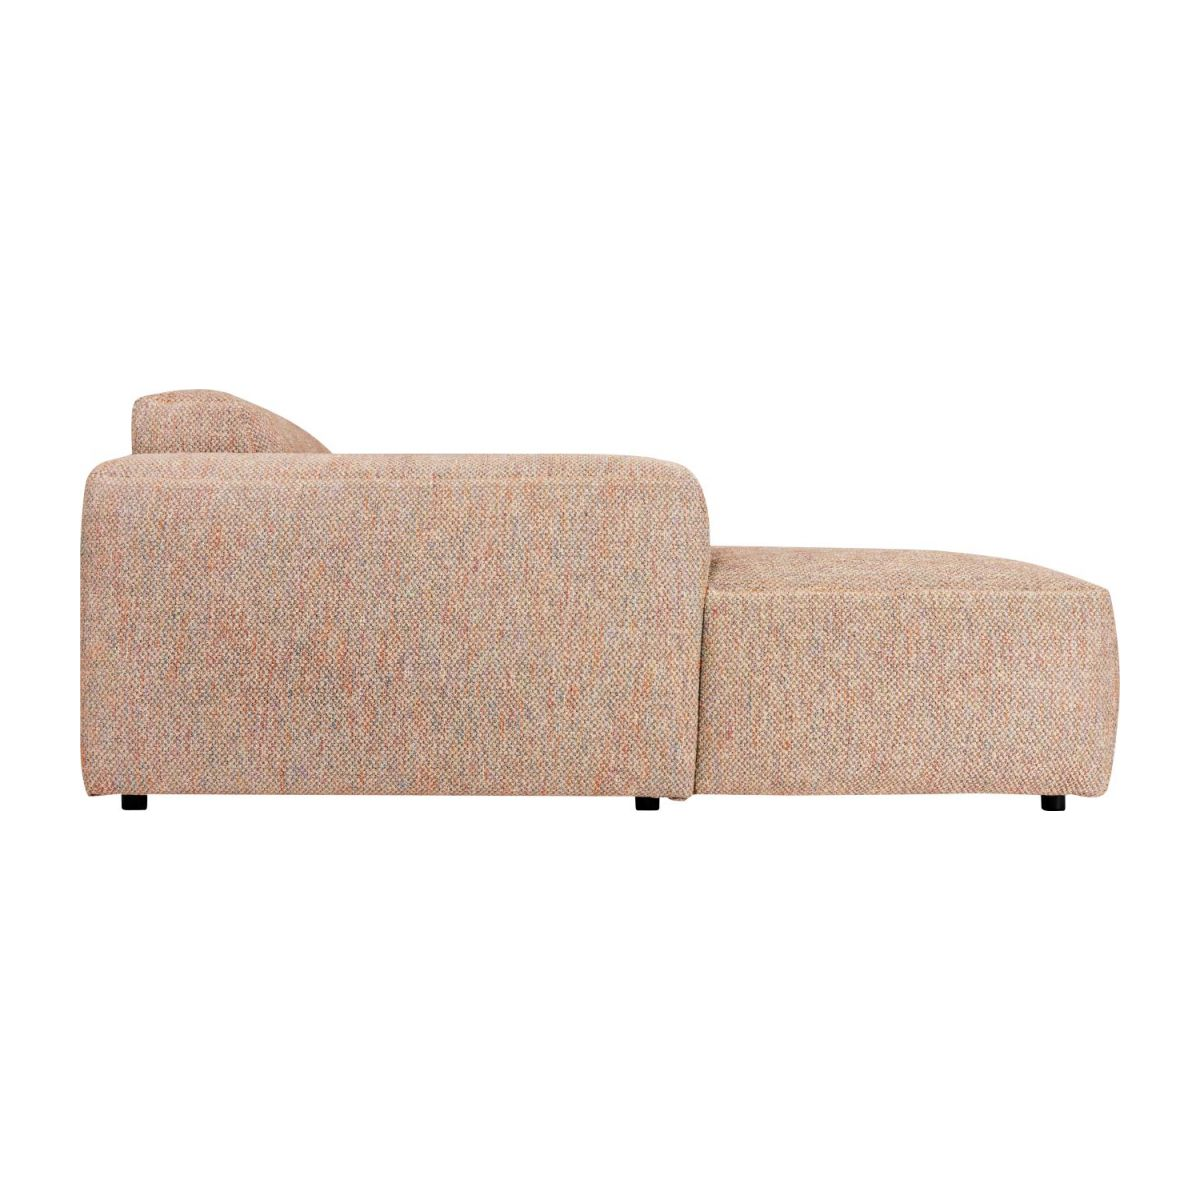 3-Sitzer Sofa mit Chaiselongue links aus Bellagio-Stoff - Orange n°7